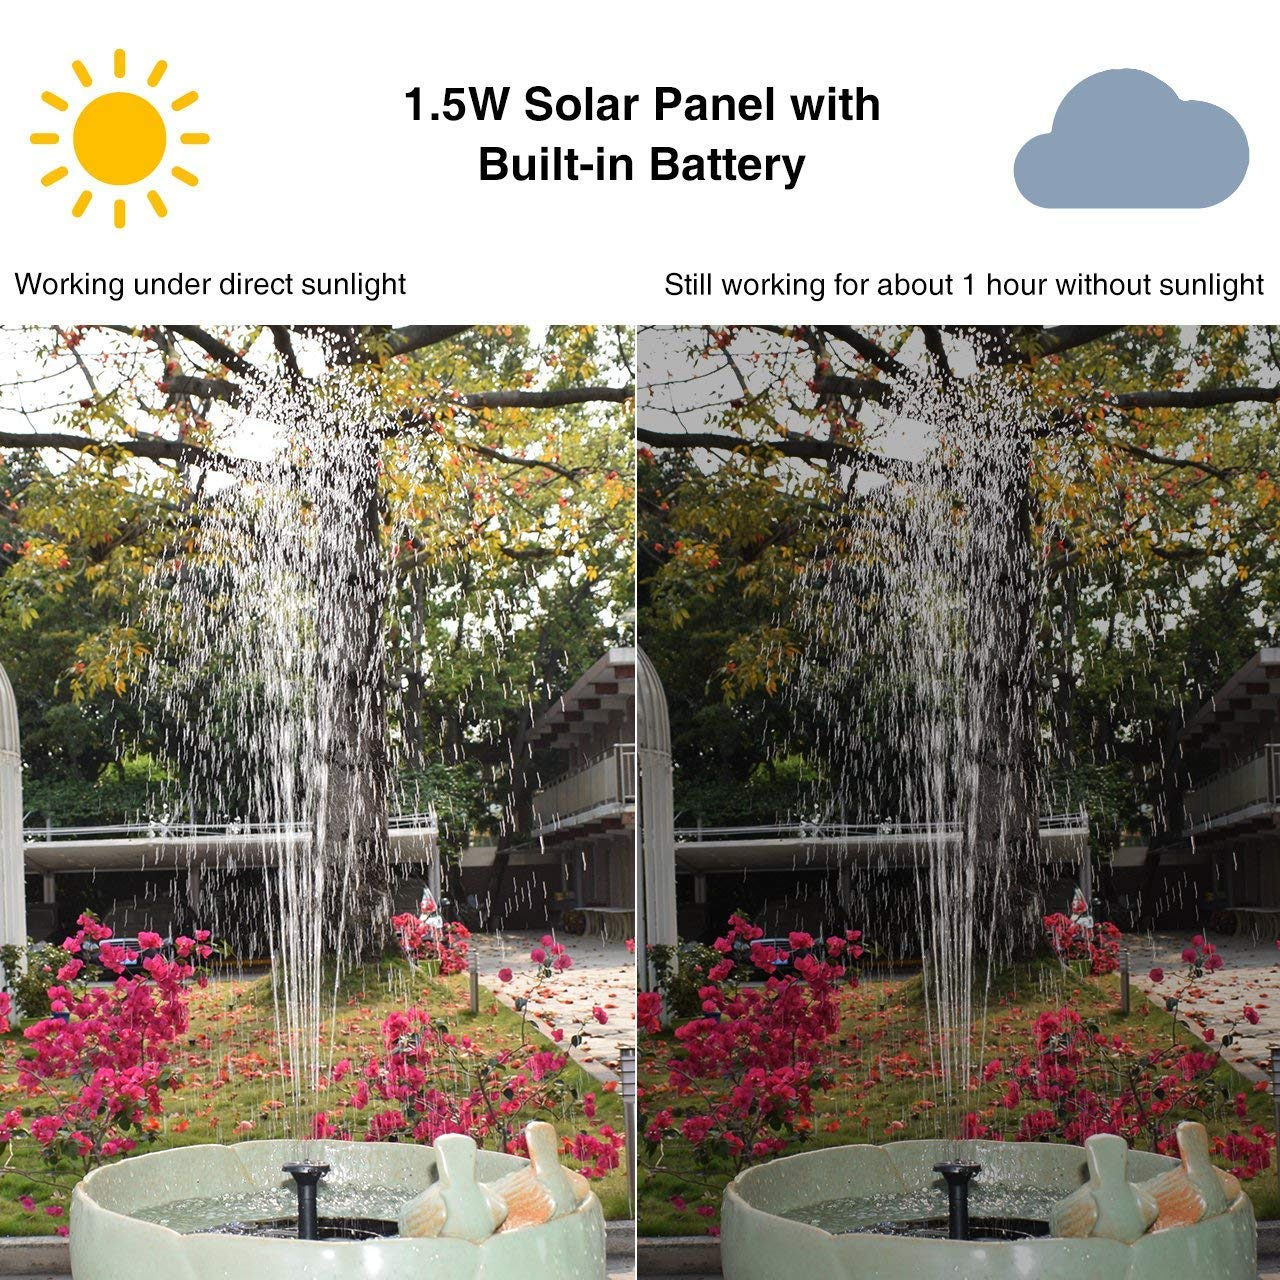 LATITOP Upgraded 1.5W Solar Fountain Water Pump with Battery Backup, Free Standing, Submersible, for Bird Bath, Garden, Back Yard and Small Pond (Black)